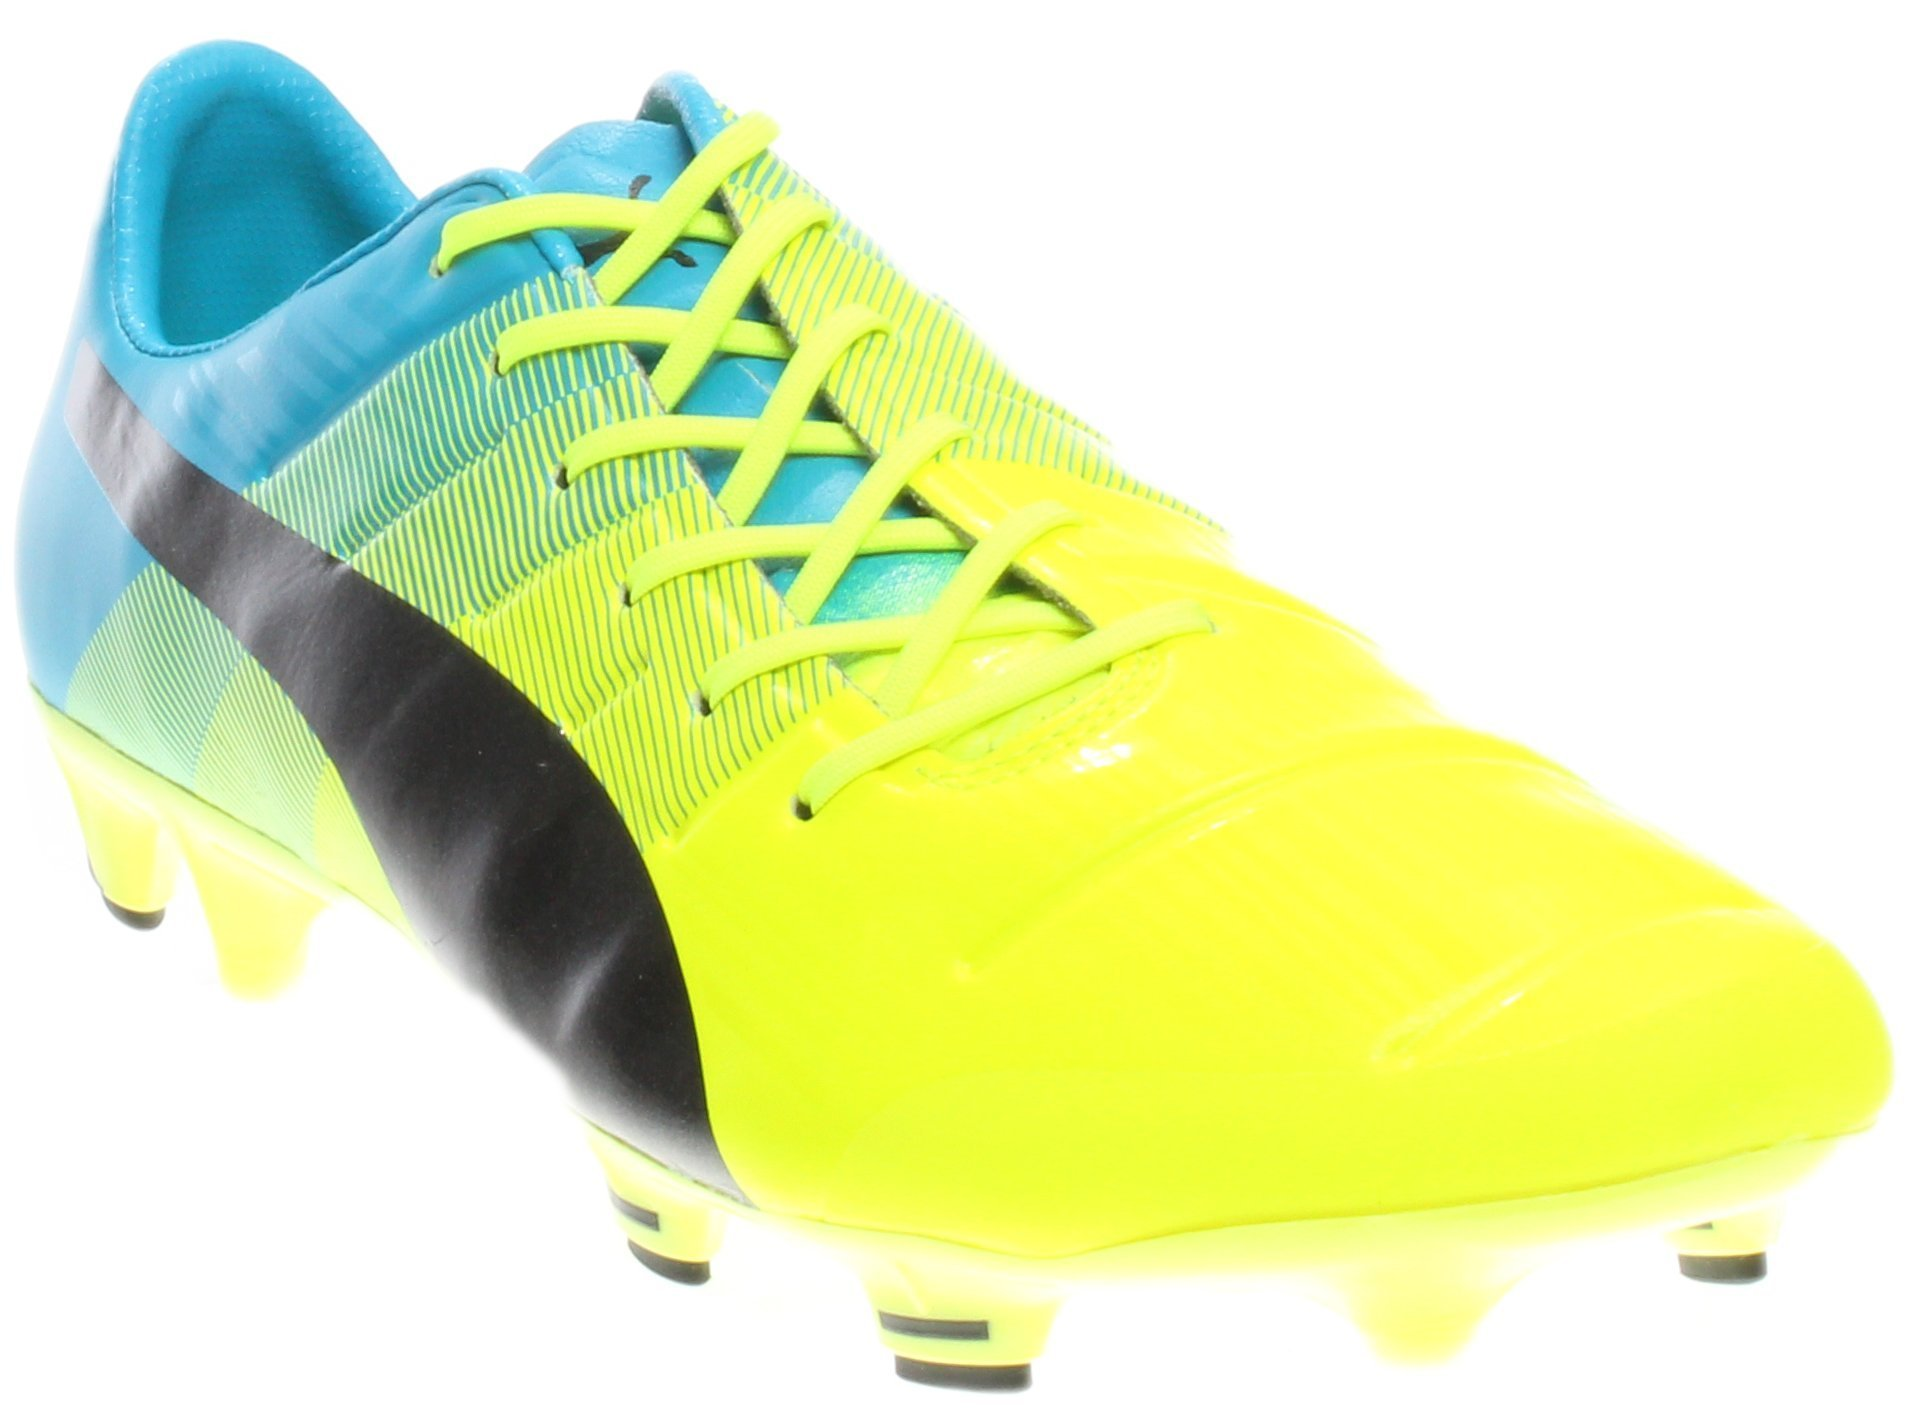 PUMA Men's Evopower 1.3 FG Sneaker, Safety Yellow/Black, 8.5 D US by PUMA